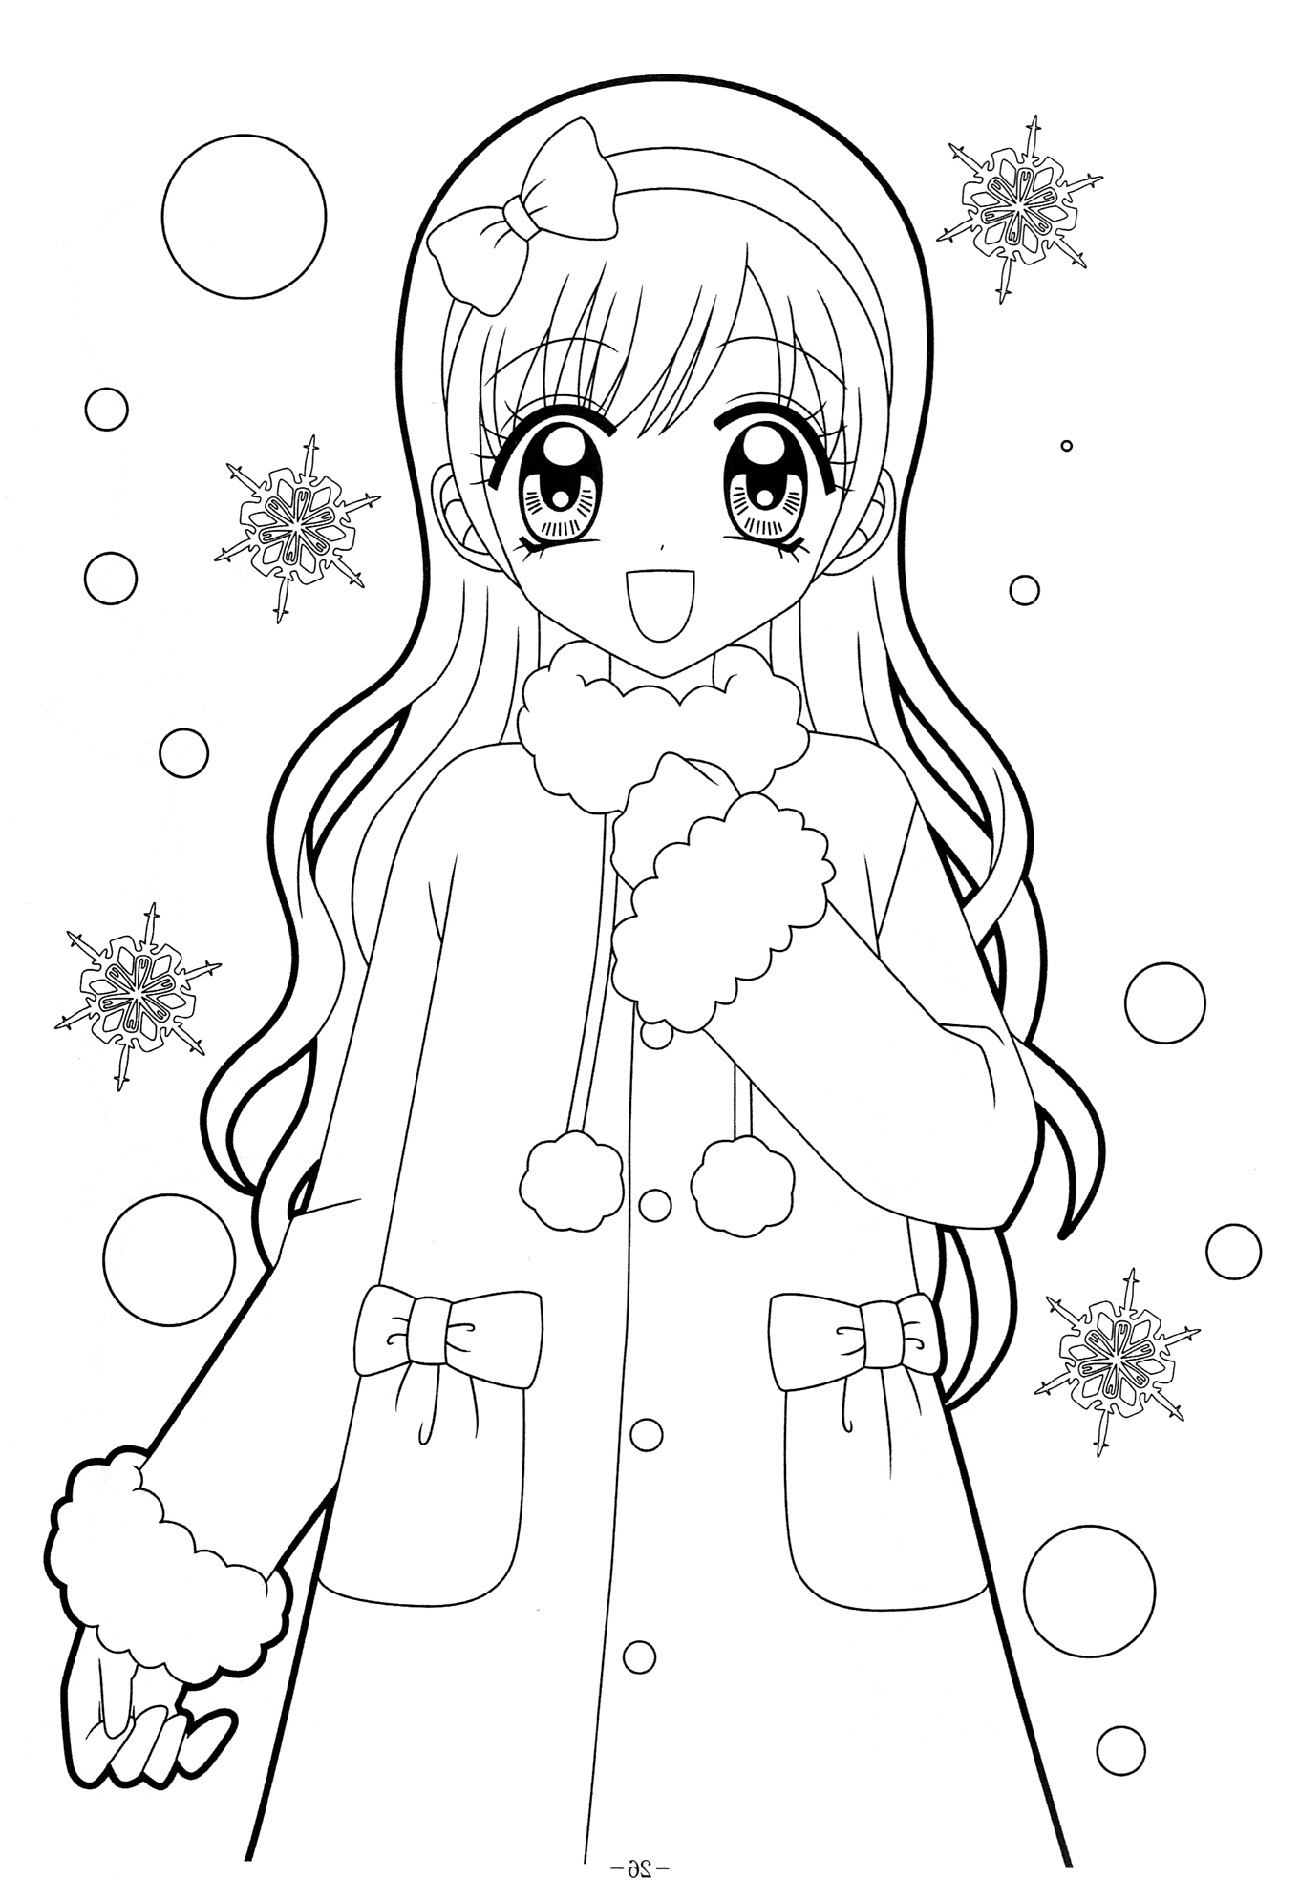 Kawaii Anime Girl Coloring Pages | 101 Coloring